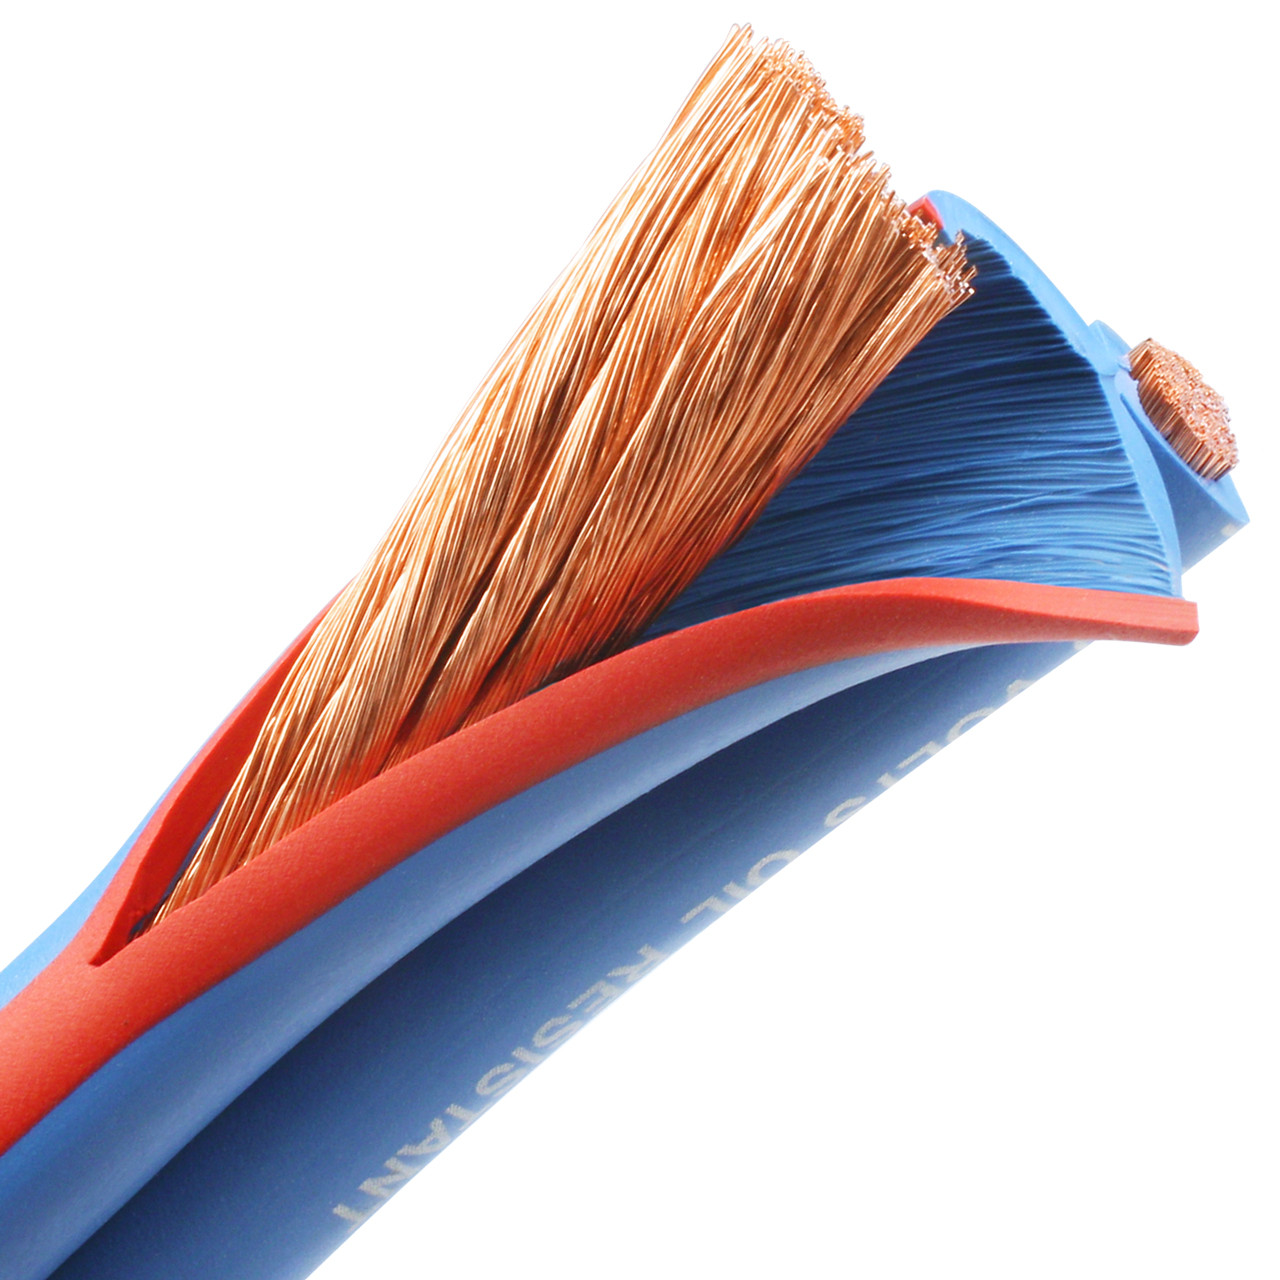 Arctic Superflex Blue 2 gauge flexible, fine stranded 100% copper parallel bonded double conductor wire is made in the USA